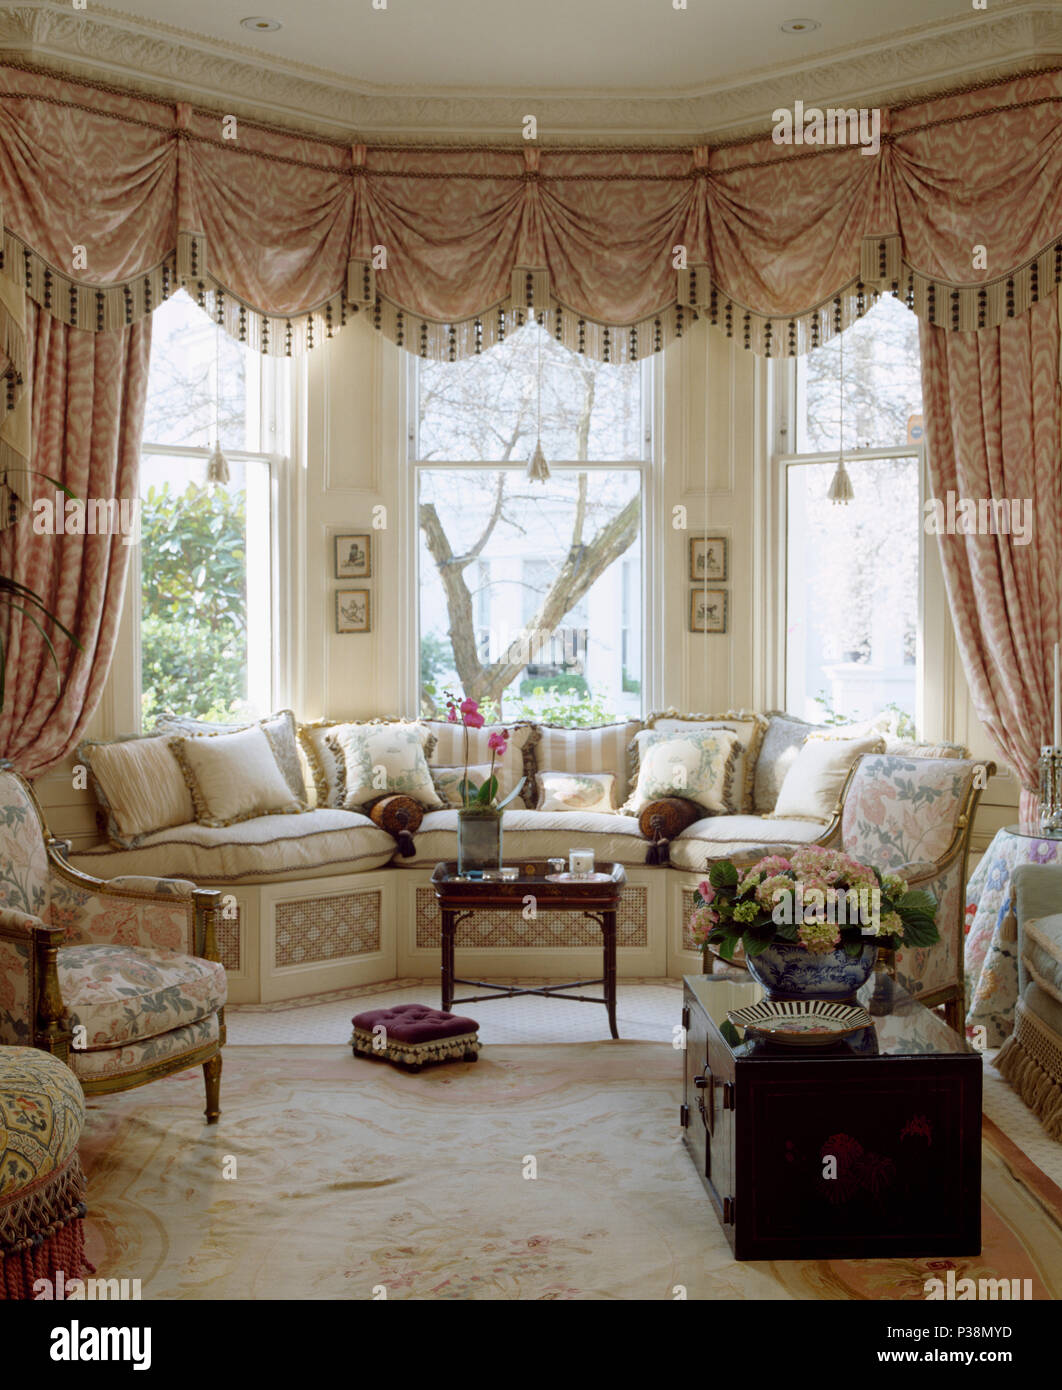 Ornate Swagged Pelmet And Silk Curtains On Bay Window In Townhouse